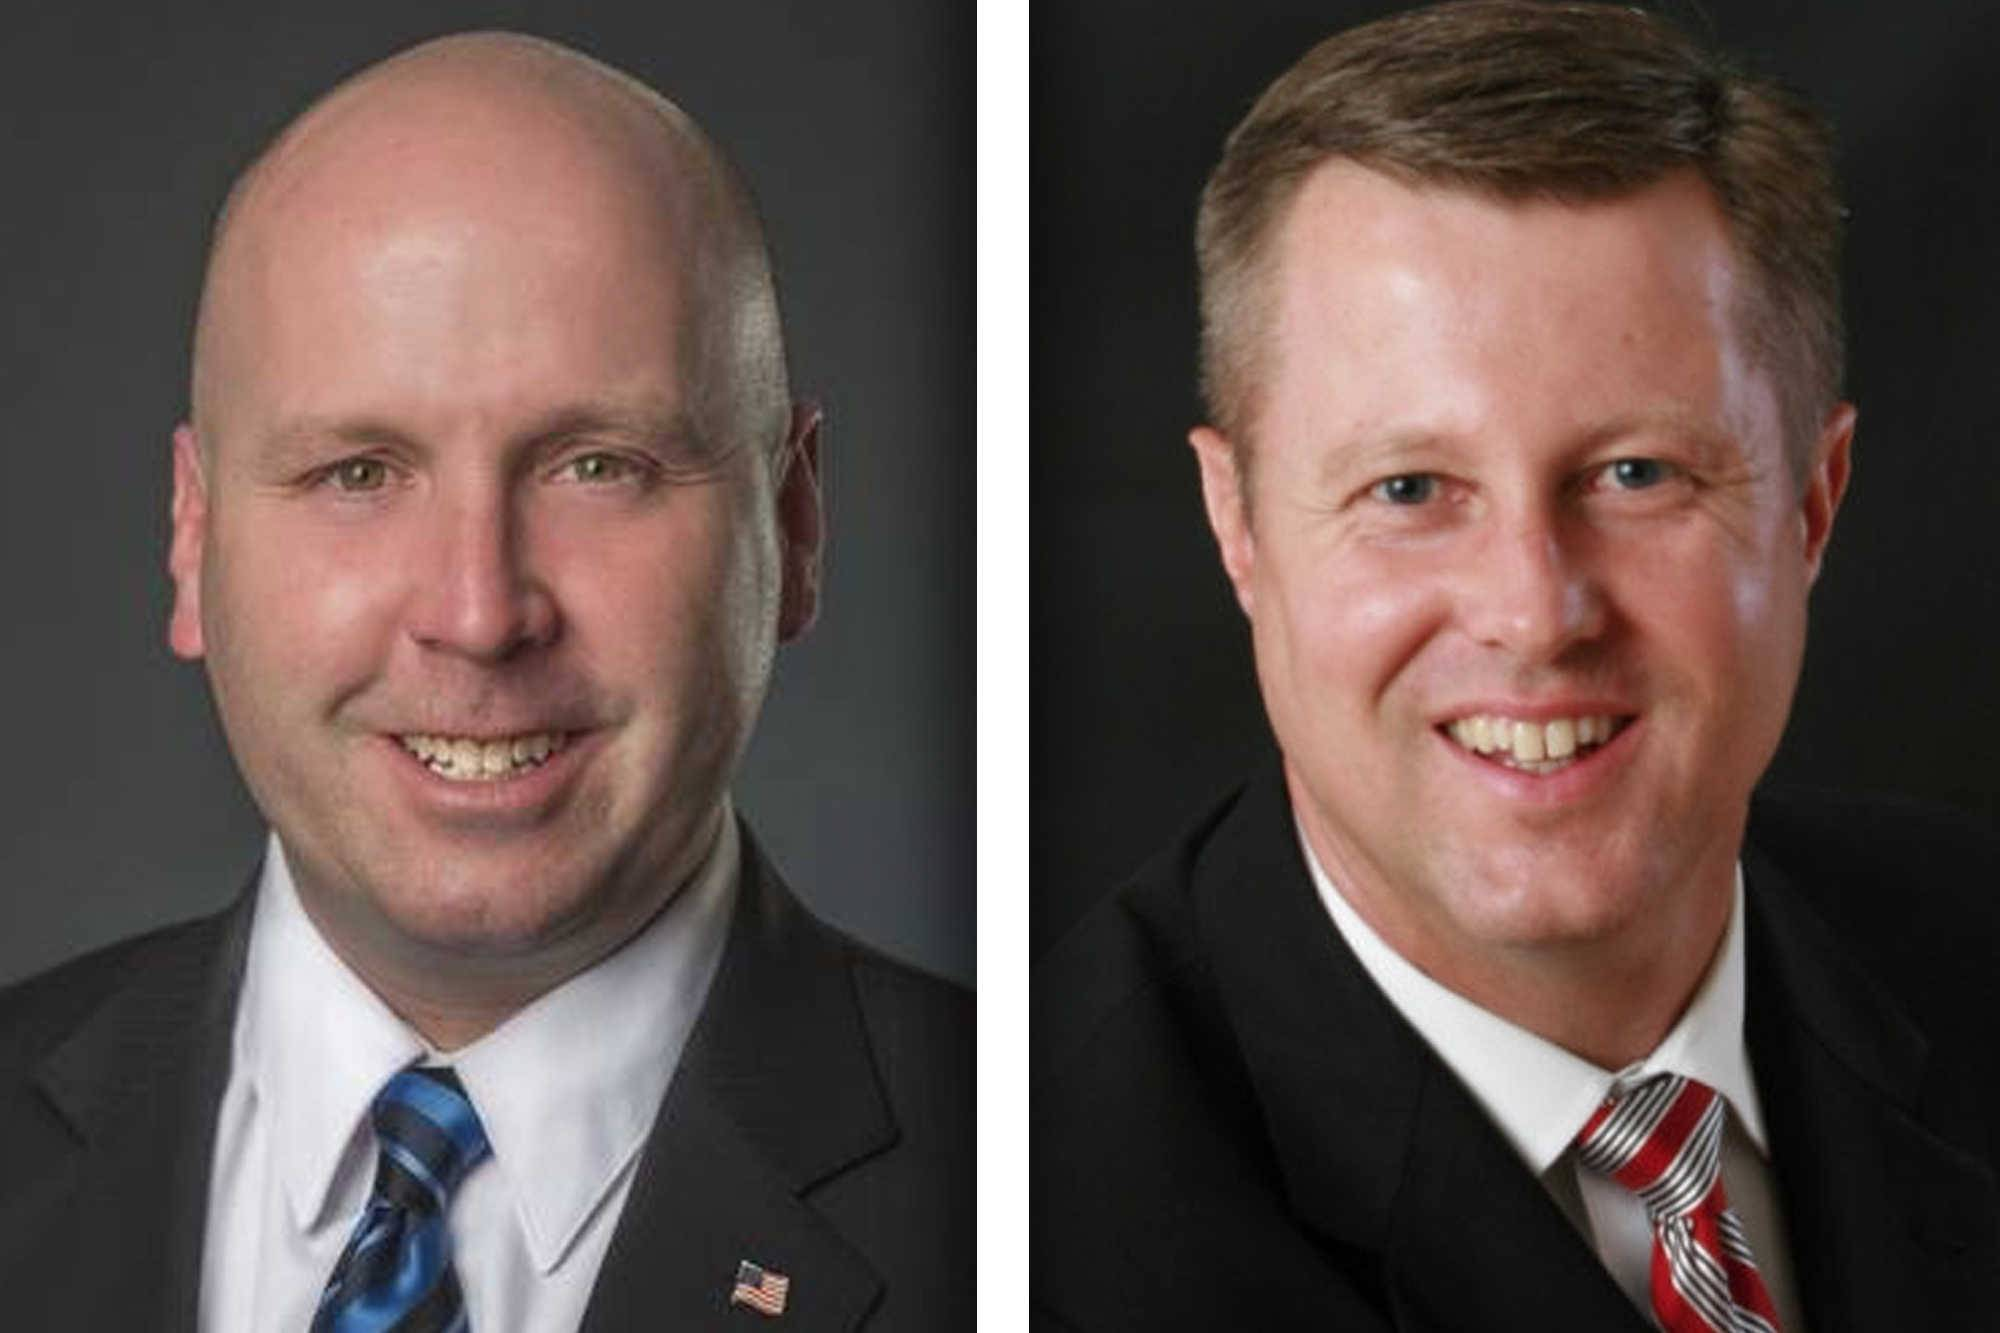 Democrat Thomas Cullerton, left, and Republican Seth Lewis are candidates in the 23rd Senate District.